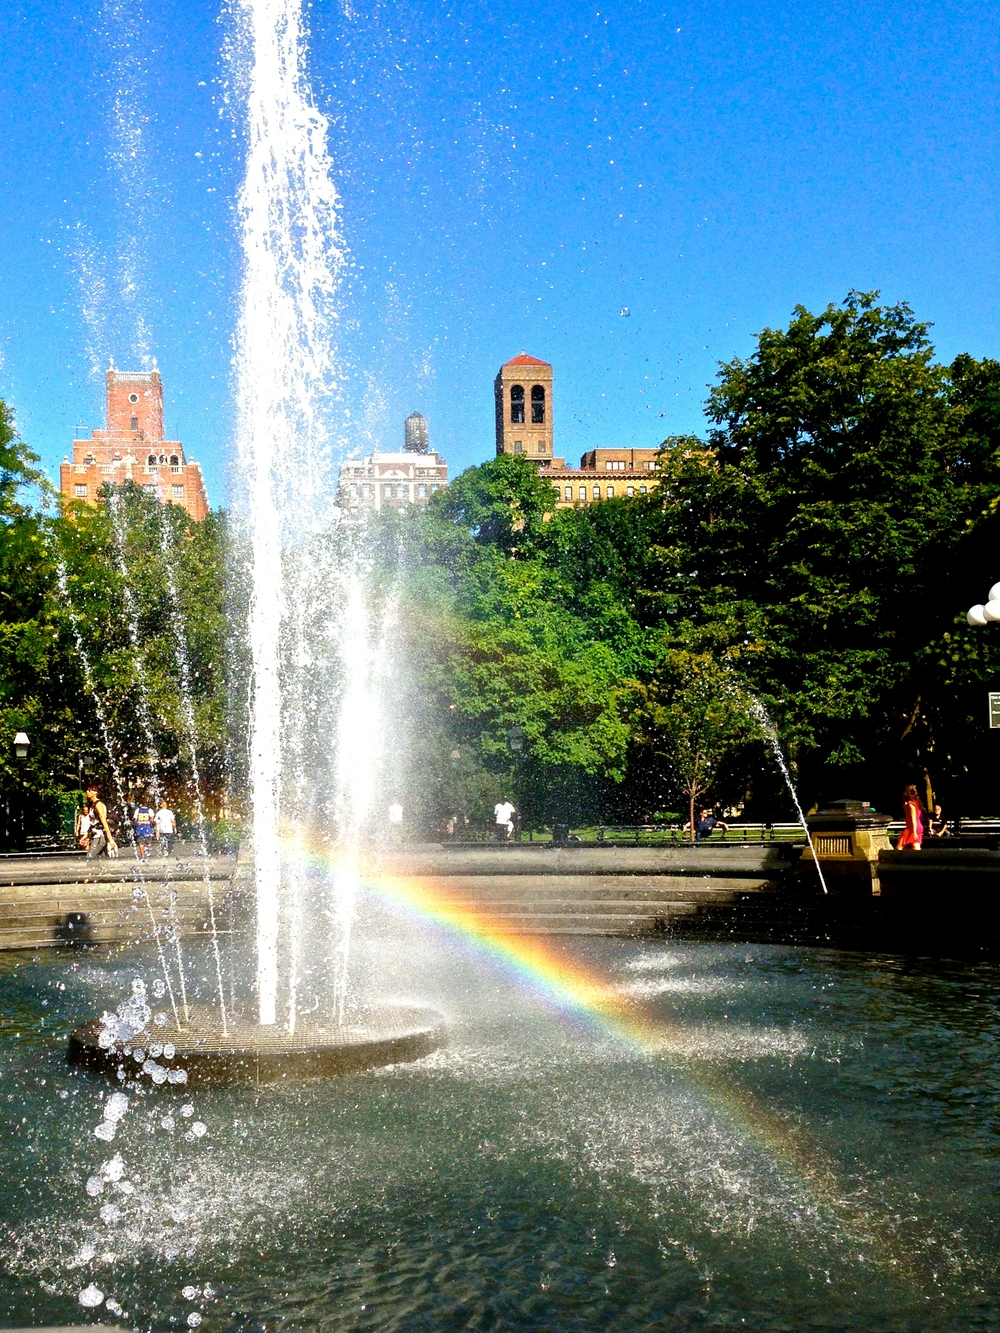 Rainbow in the WSQ Park Fountain I caught just about exactly a year ago.